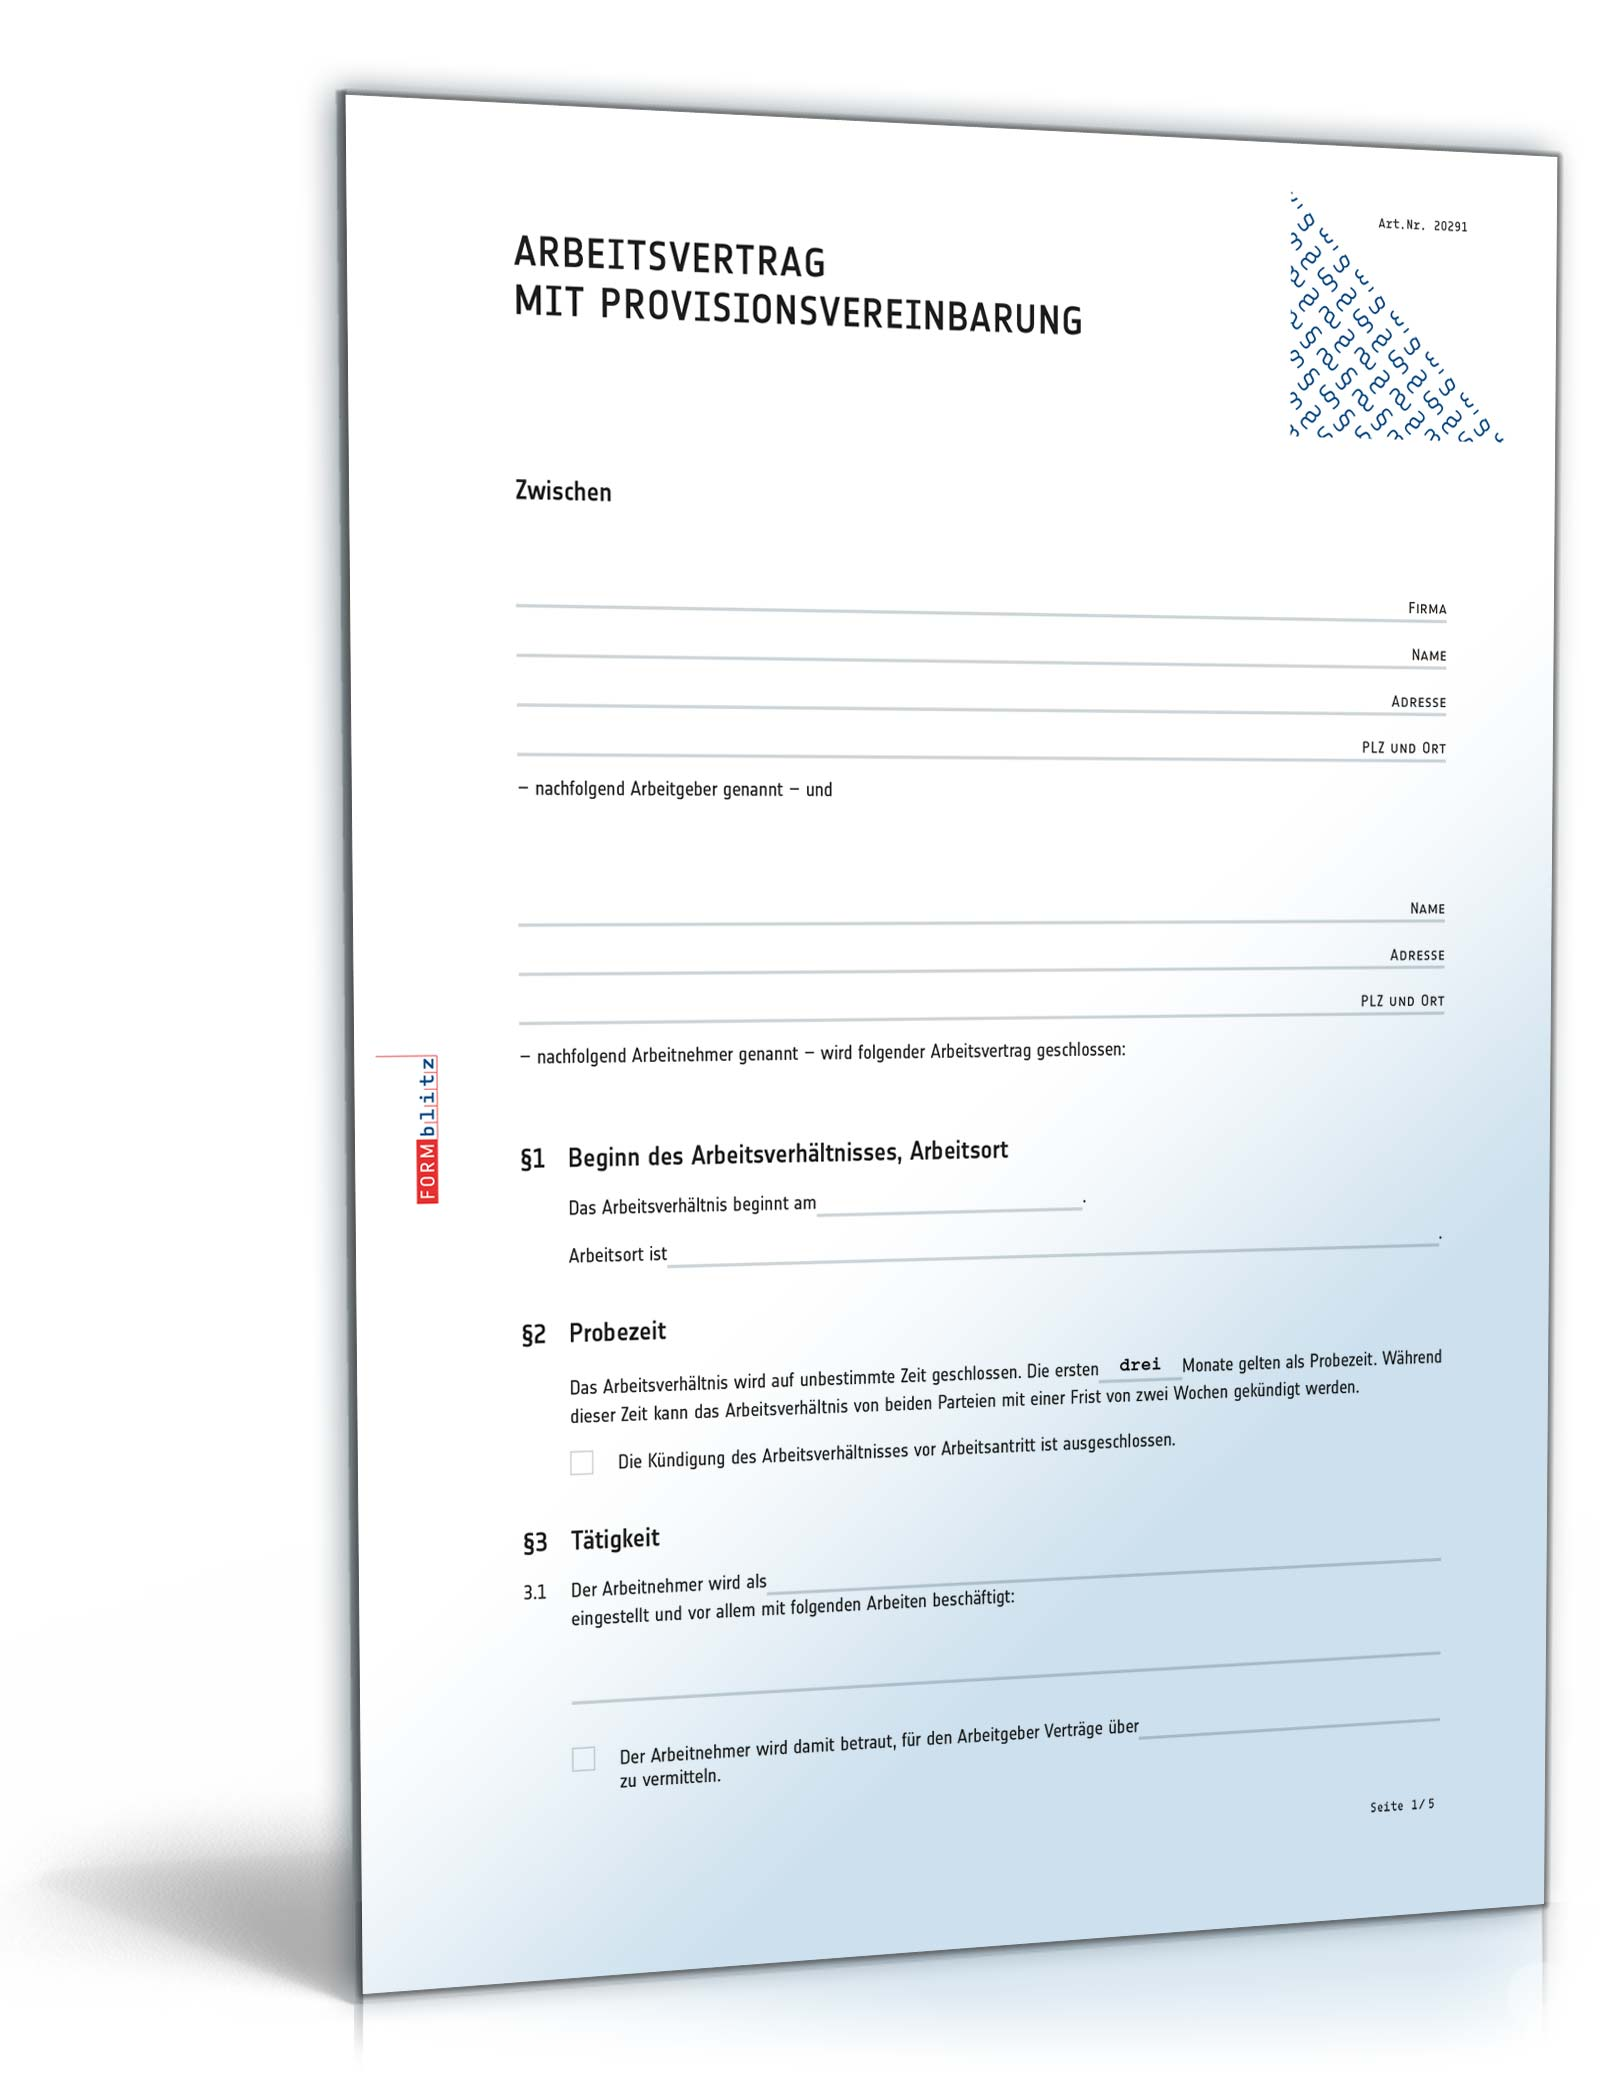 Arbeitsvertrag Provisionsvereinbarung Muster Zum Download